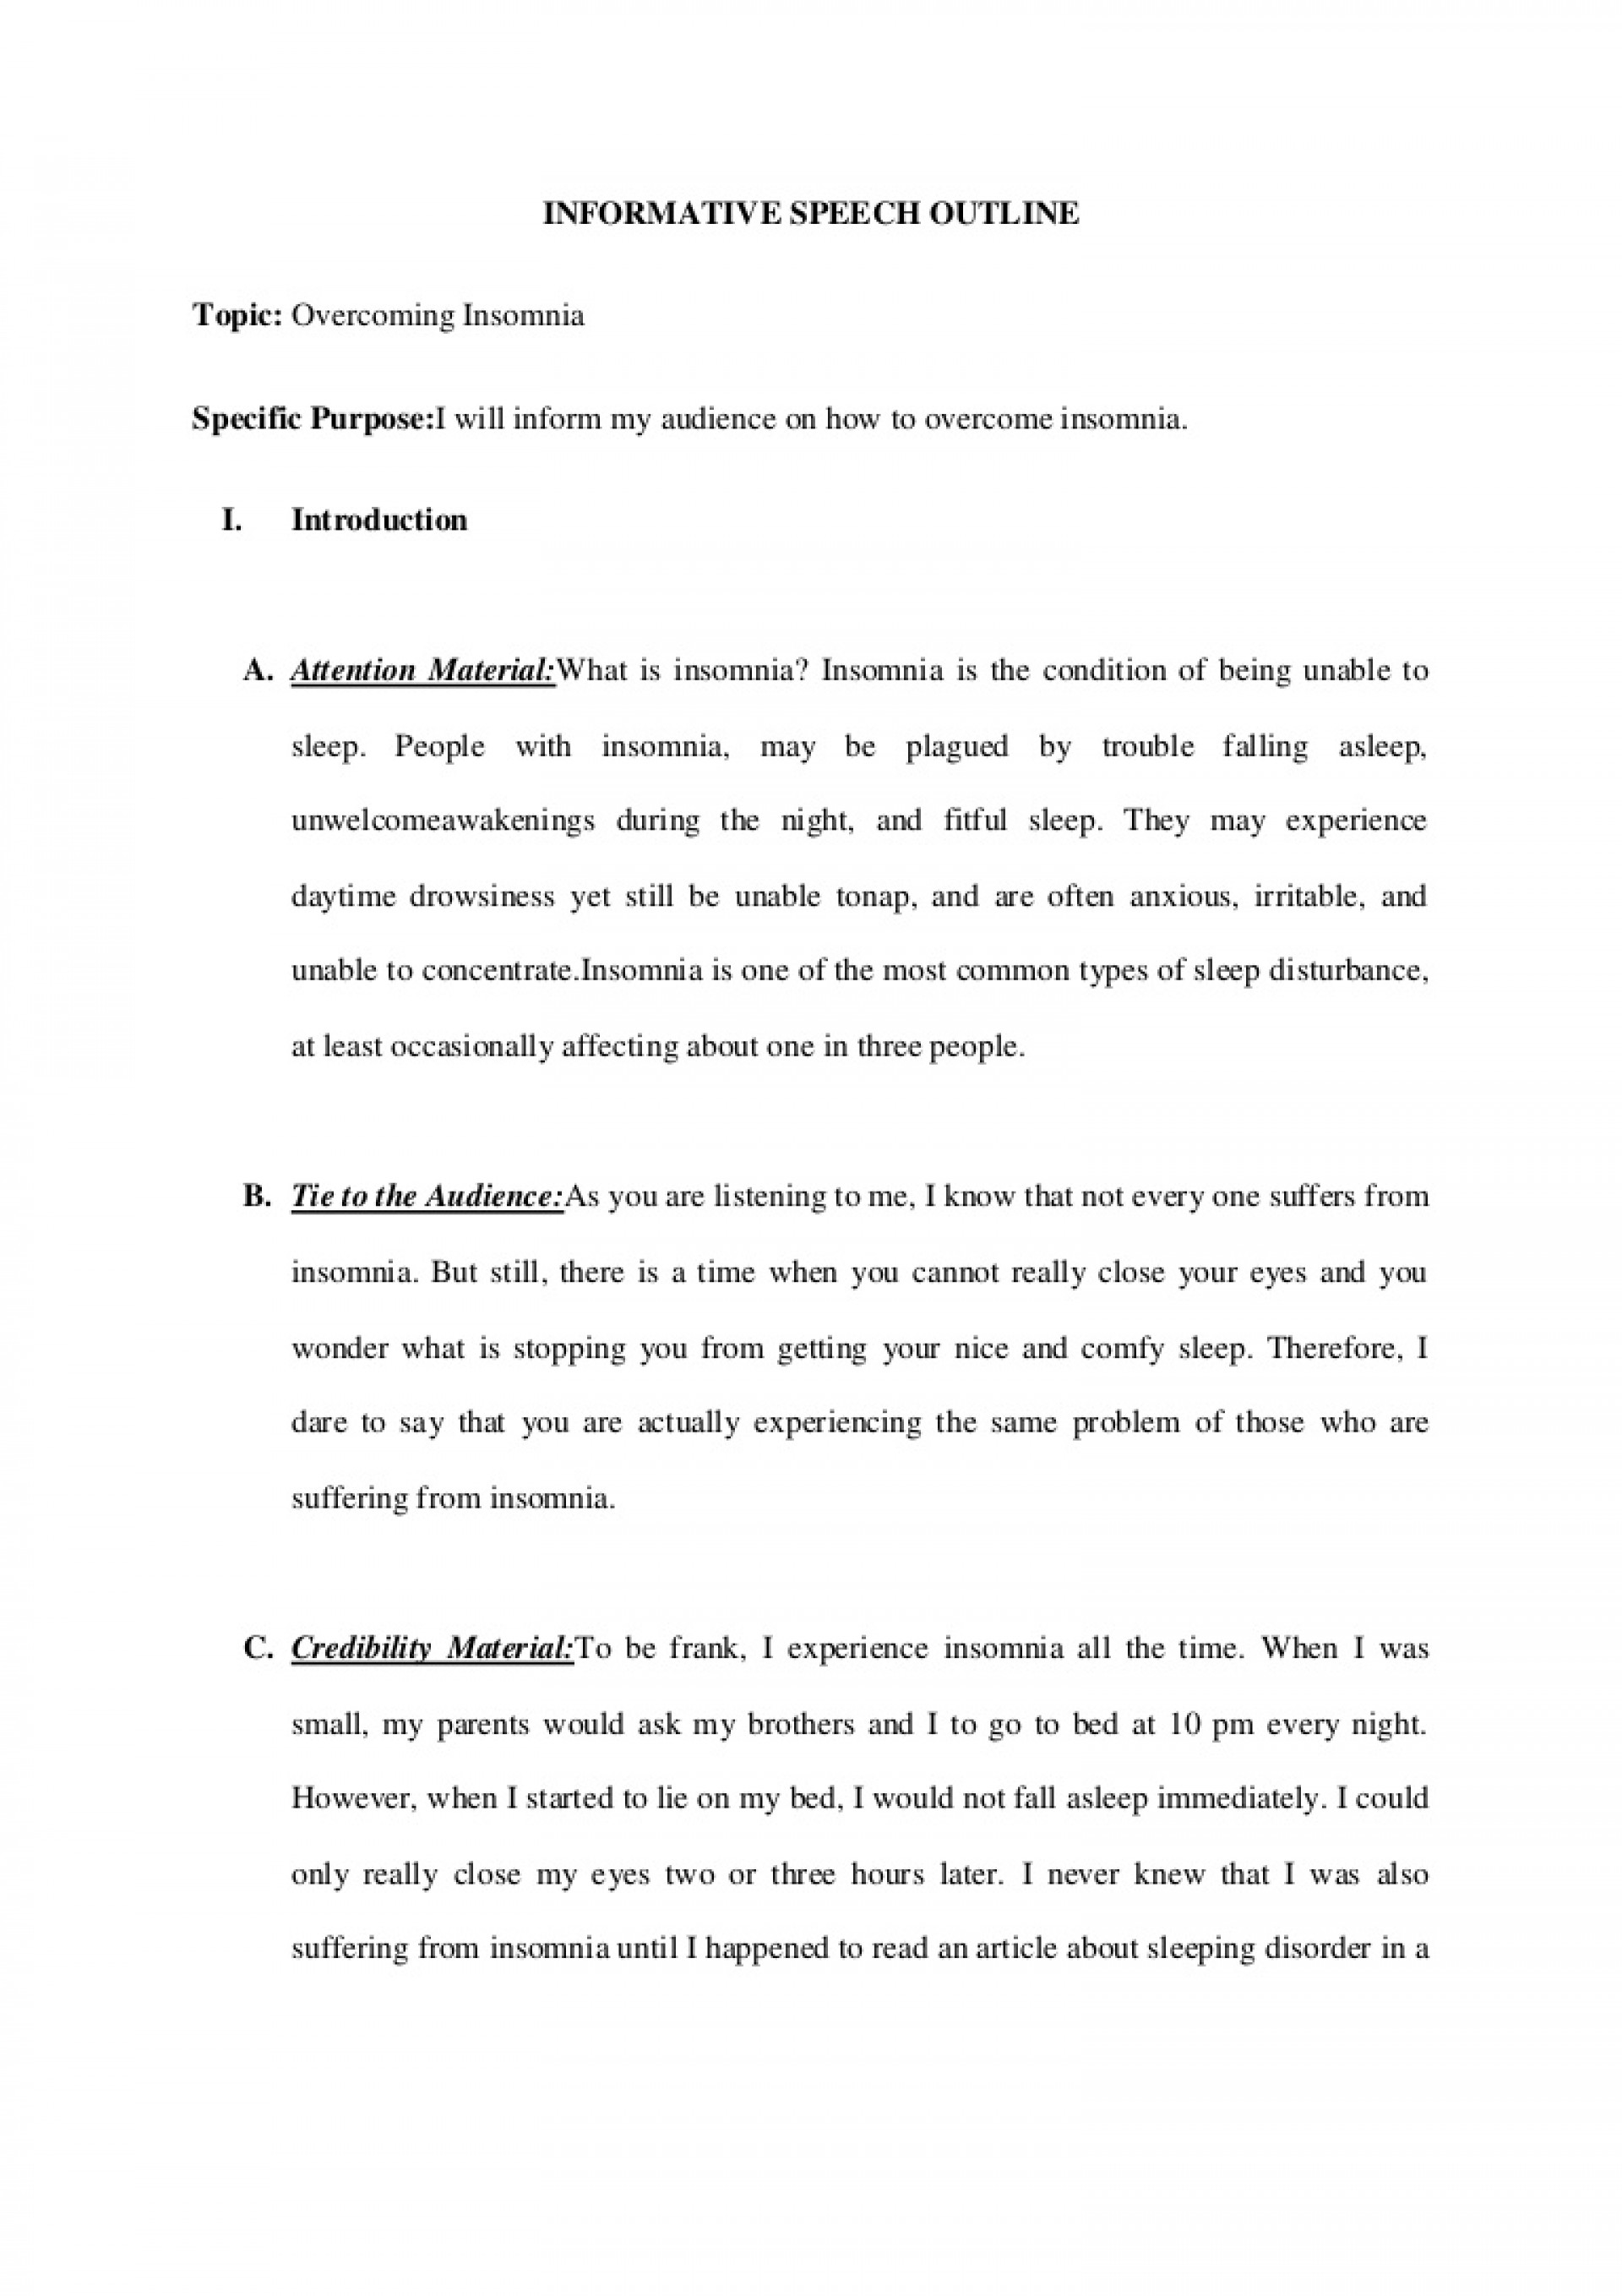 010 Informativespeechoutlineovercomeinsomnia Phpapp02 Thumbnail Essay Example Animal Fearsome Abuse Outline Conclusion Essays Free 1920